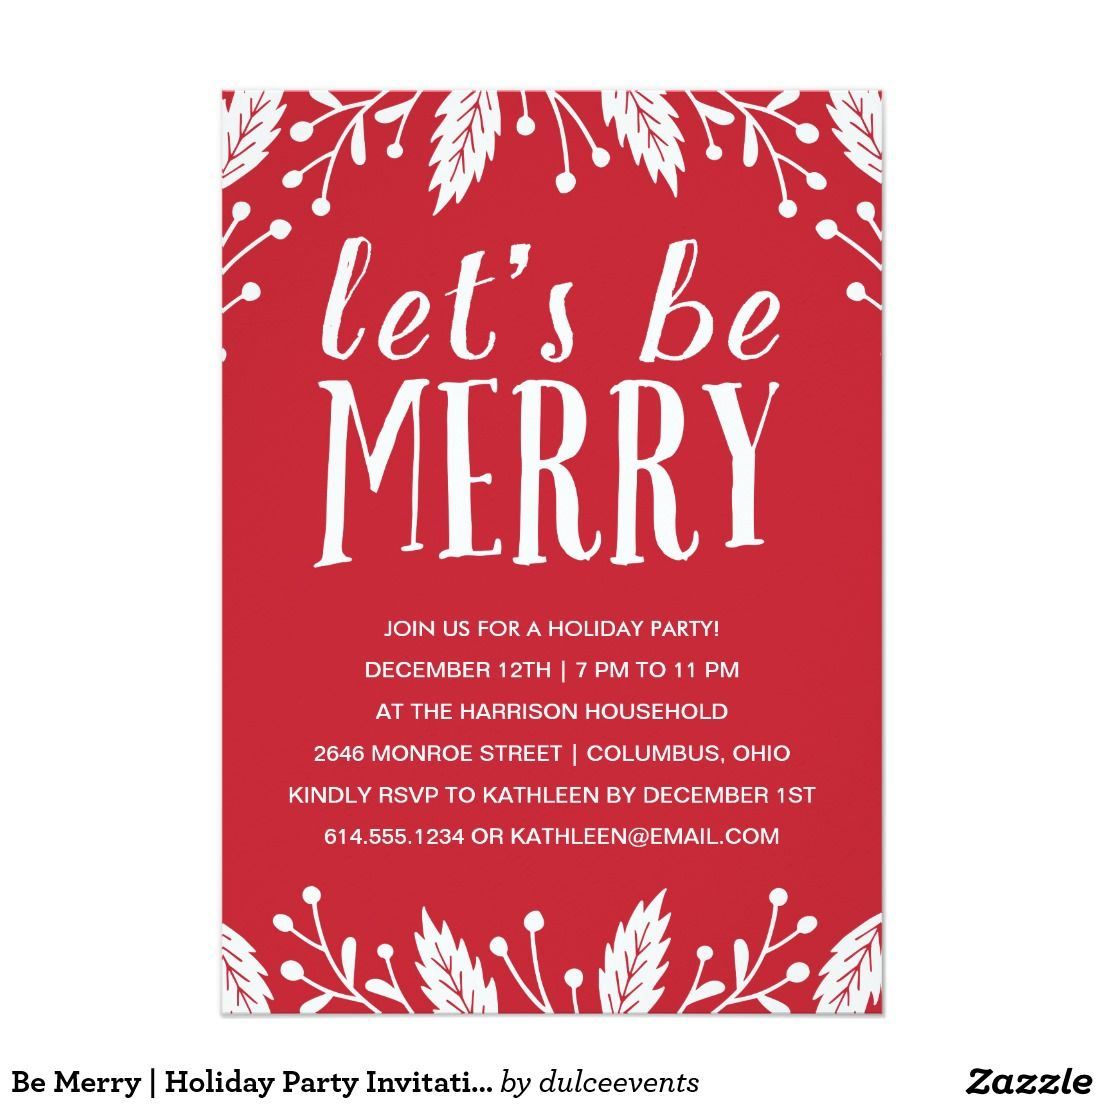 Cute holiday party invitation with hand lettering, red and white ...